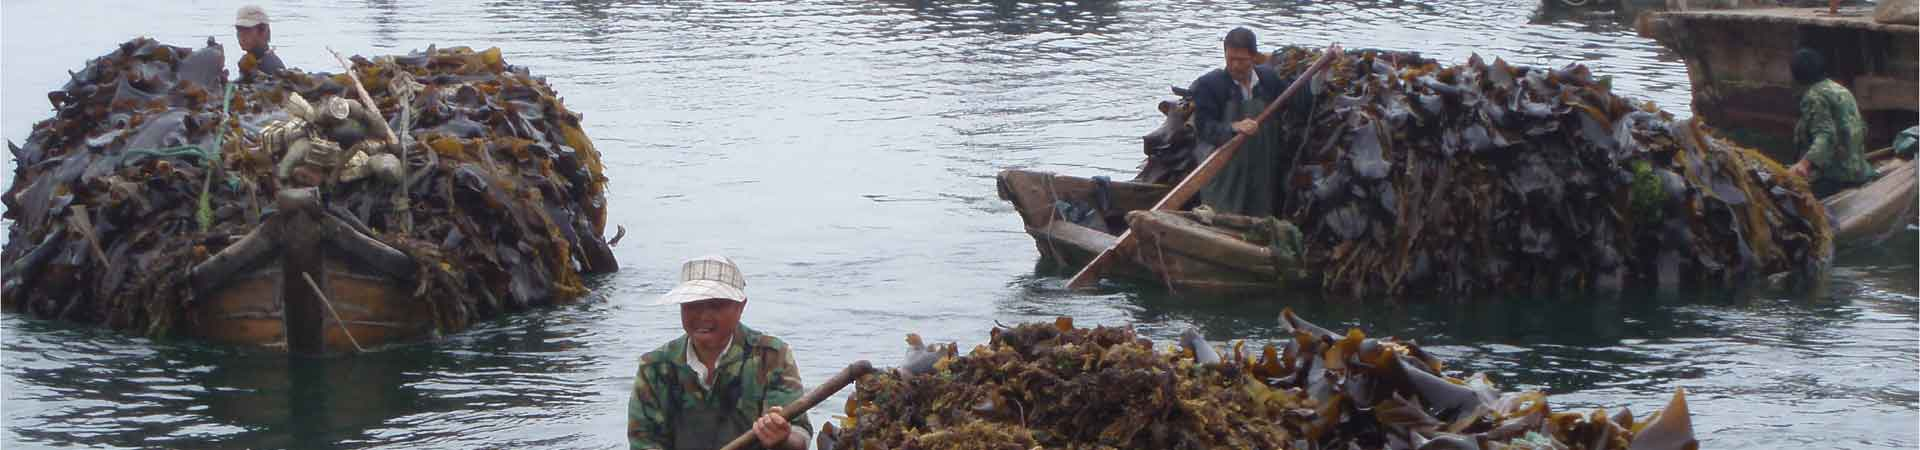 Seaweed collection from farms in China